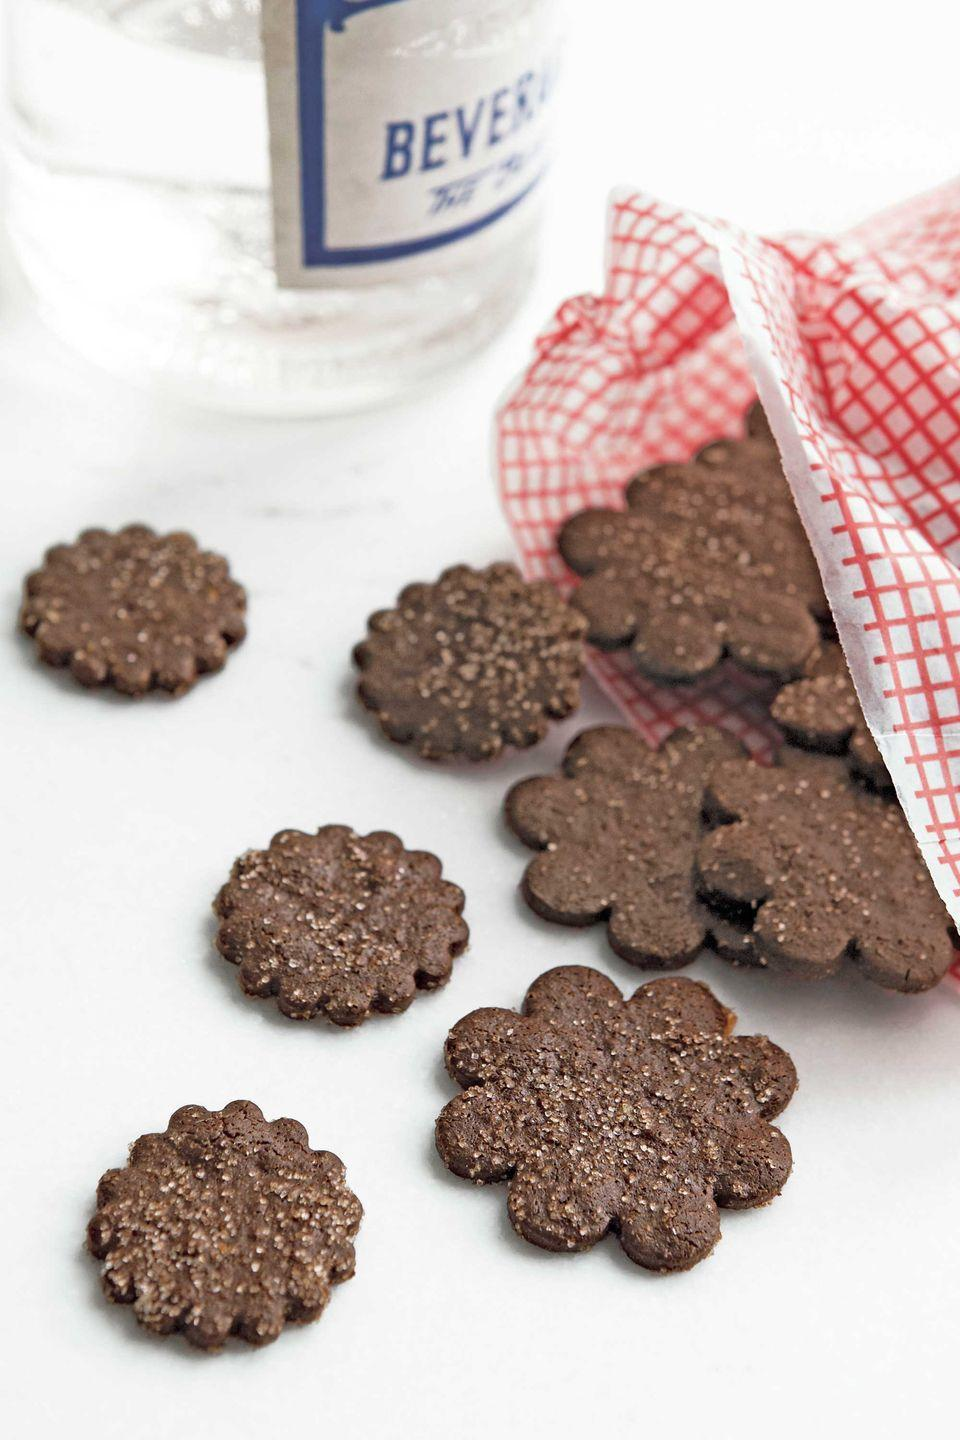 """<p>Semisweet chocolate chips, light-brown sugar, and Dutch-processed cocoa powder yield a refined richness.</p><p><strong><a href=""""https://www.countryliving.com/food-drinks/recipes/a4007/chocolate-coins-recipe-clx1211/?click=recipe_sr"""" rel=""""nofollow noopener"""" target=""""_blank"""" data-ylk=""""slk:Get the recipe"""" class=""""link rapid-noclick-resp"""">Get the recipe</a>.</strong></p>"""